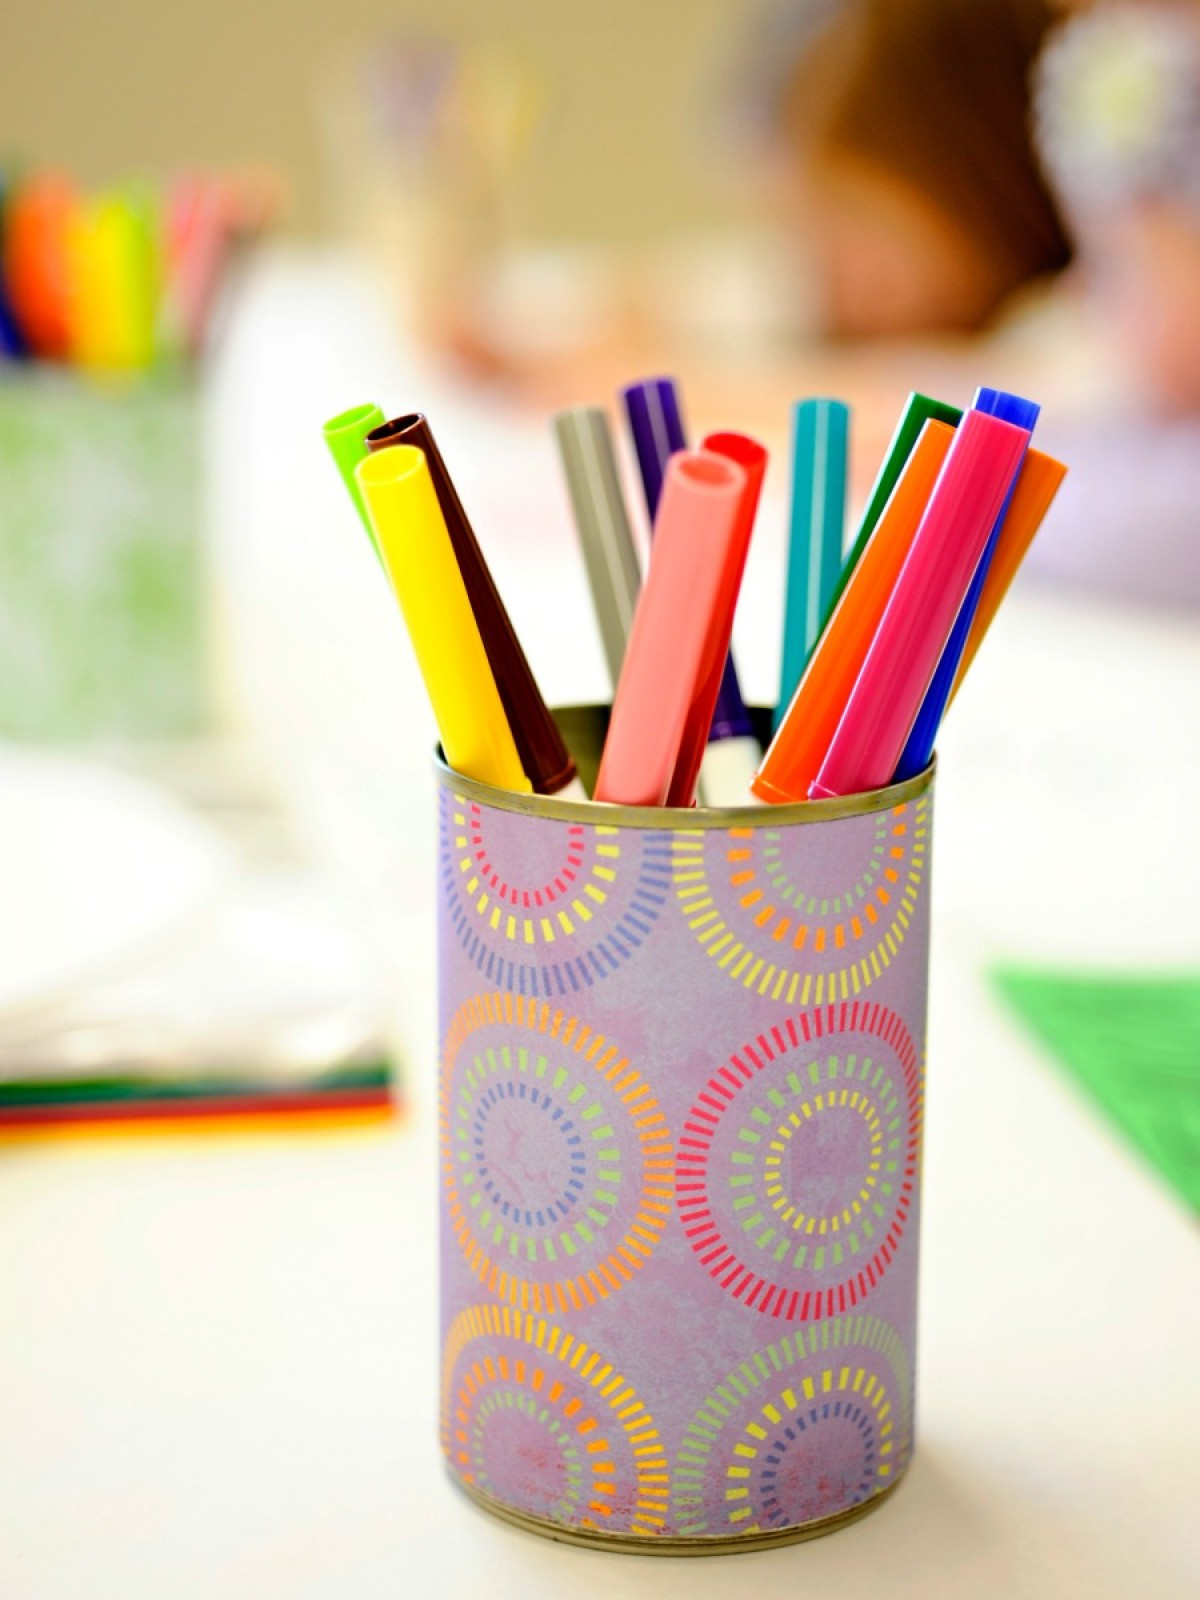 Homemade Pencil Holders Pen And Pencil Holder Ideas Thriftyfun